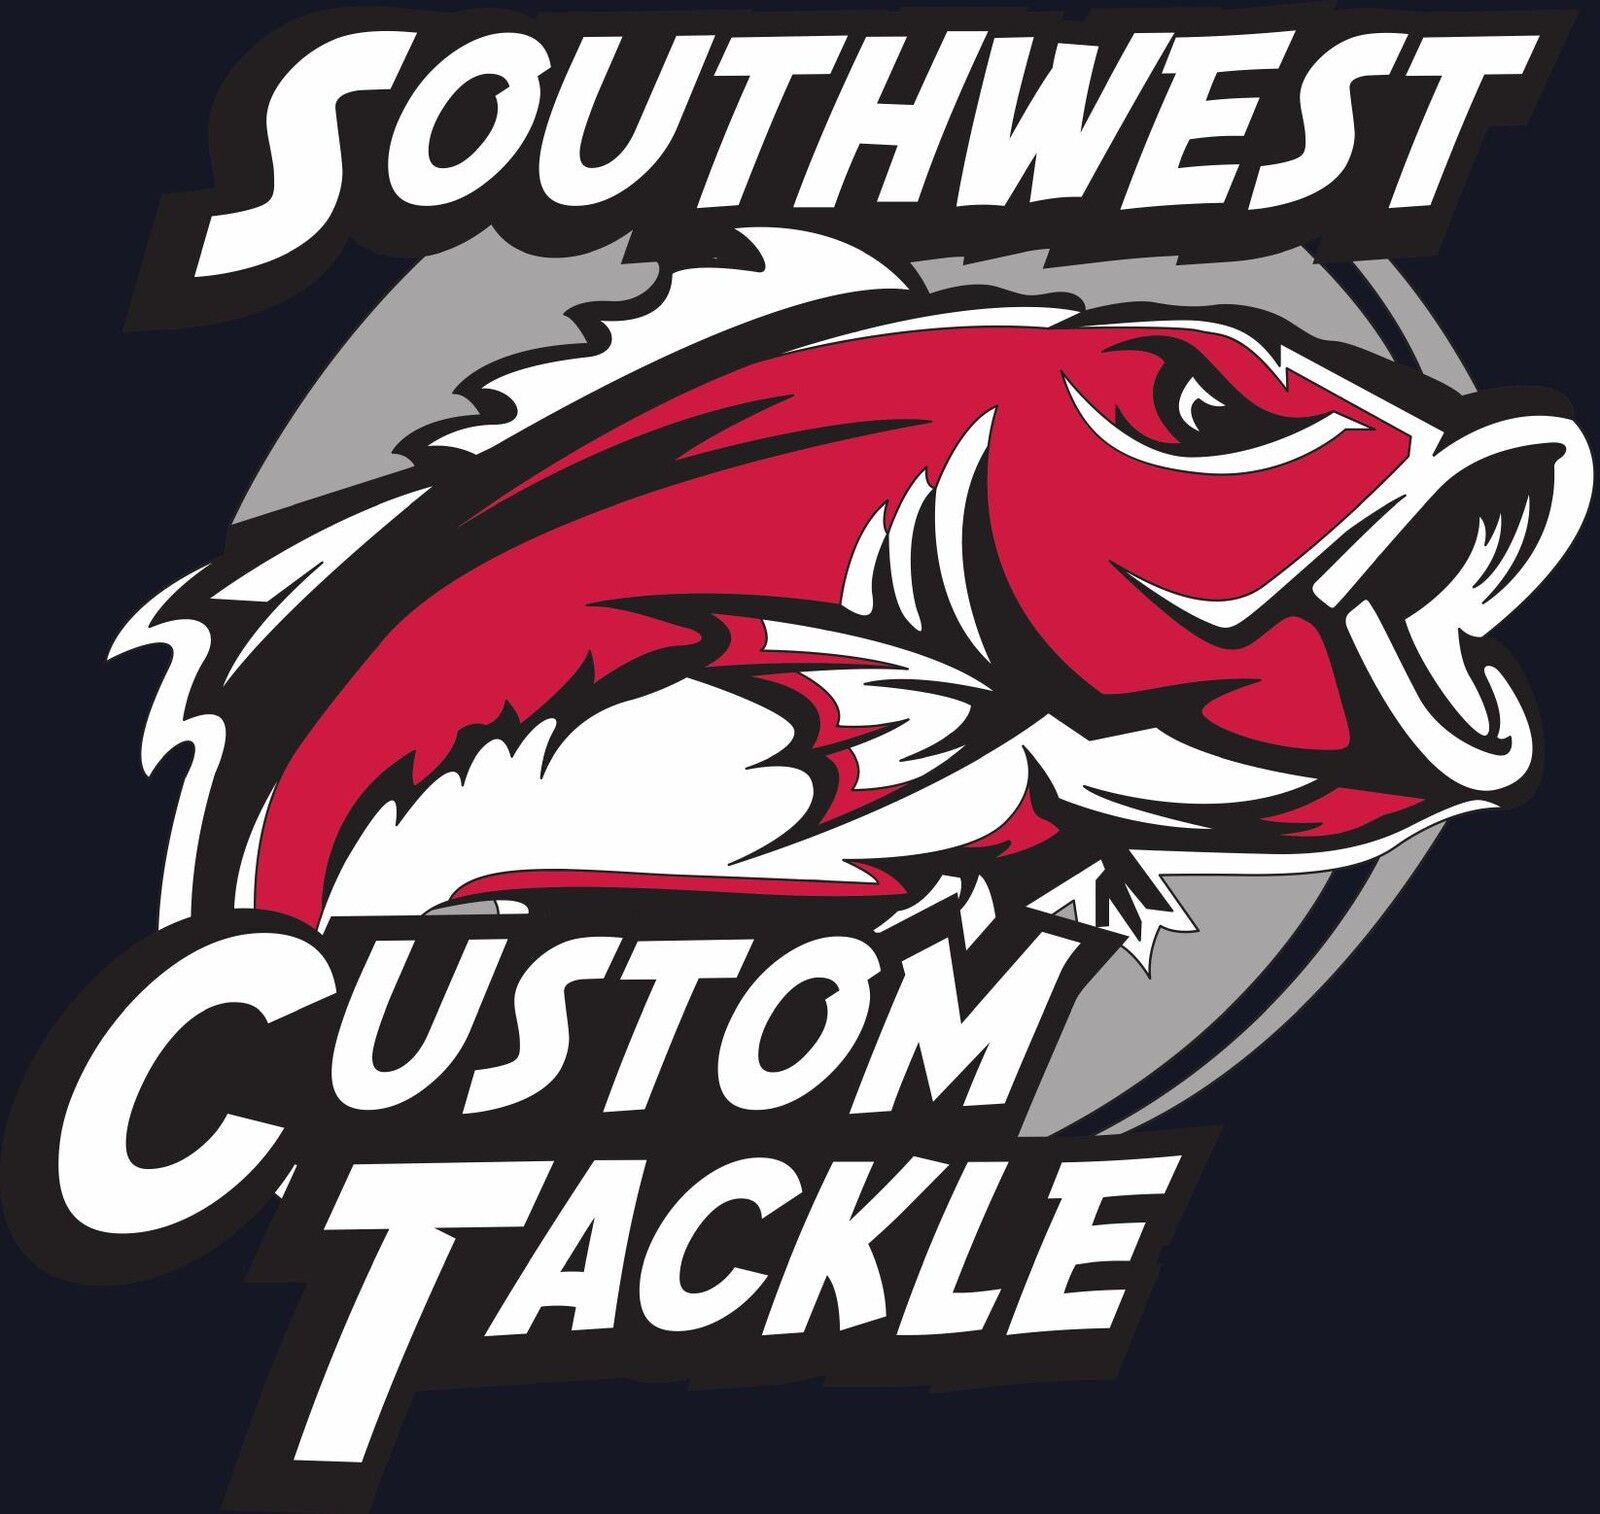 Southwest Custom Tackle